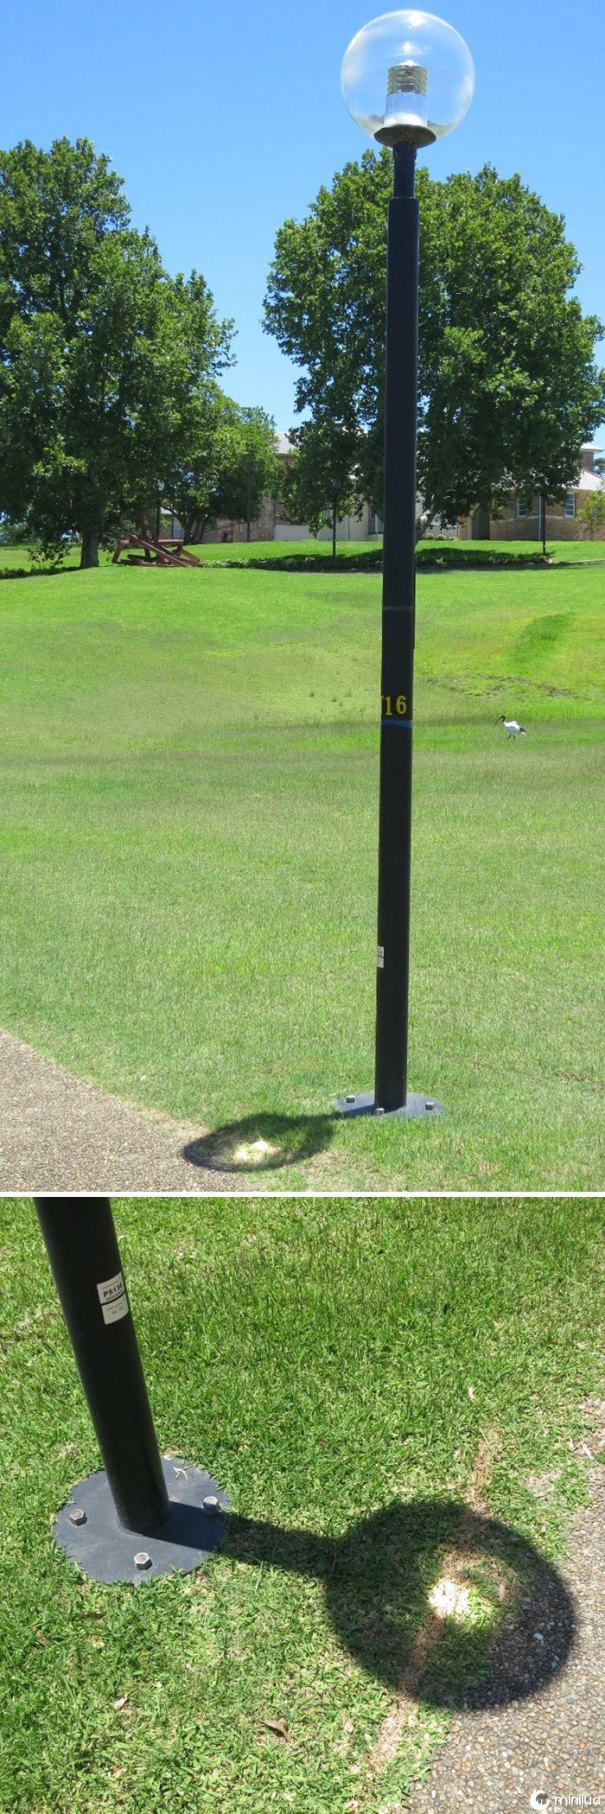 This Lamppost Focuses The Sun And Scorchers A Line In The Grass